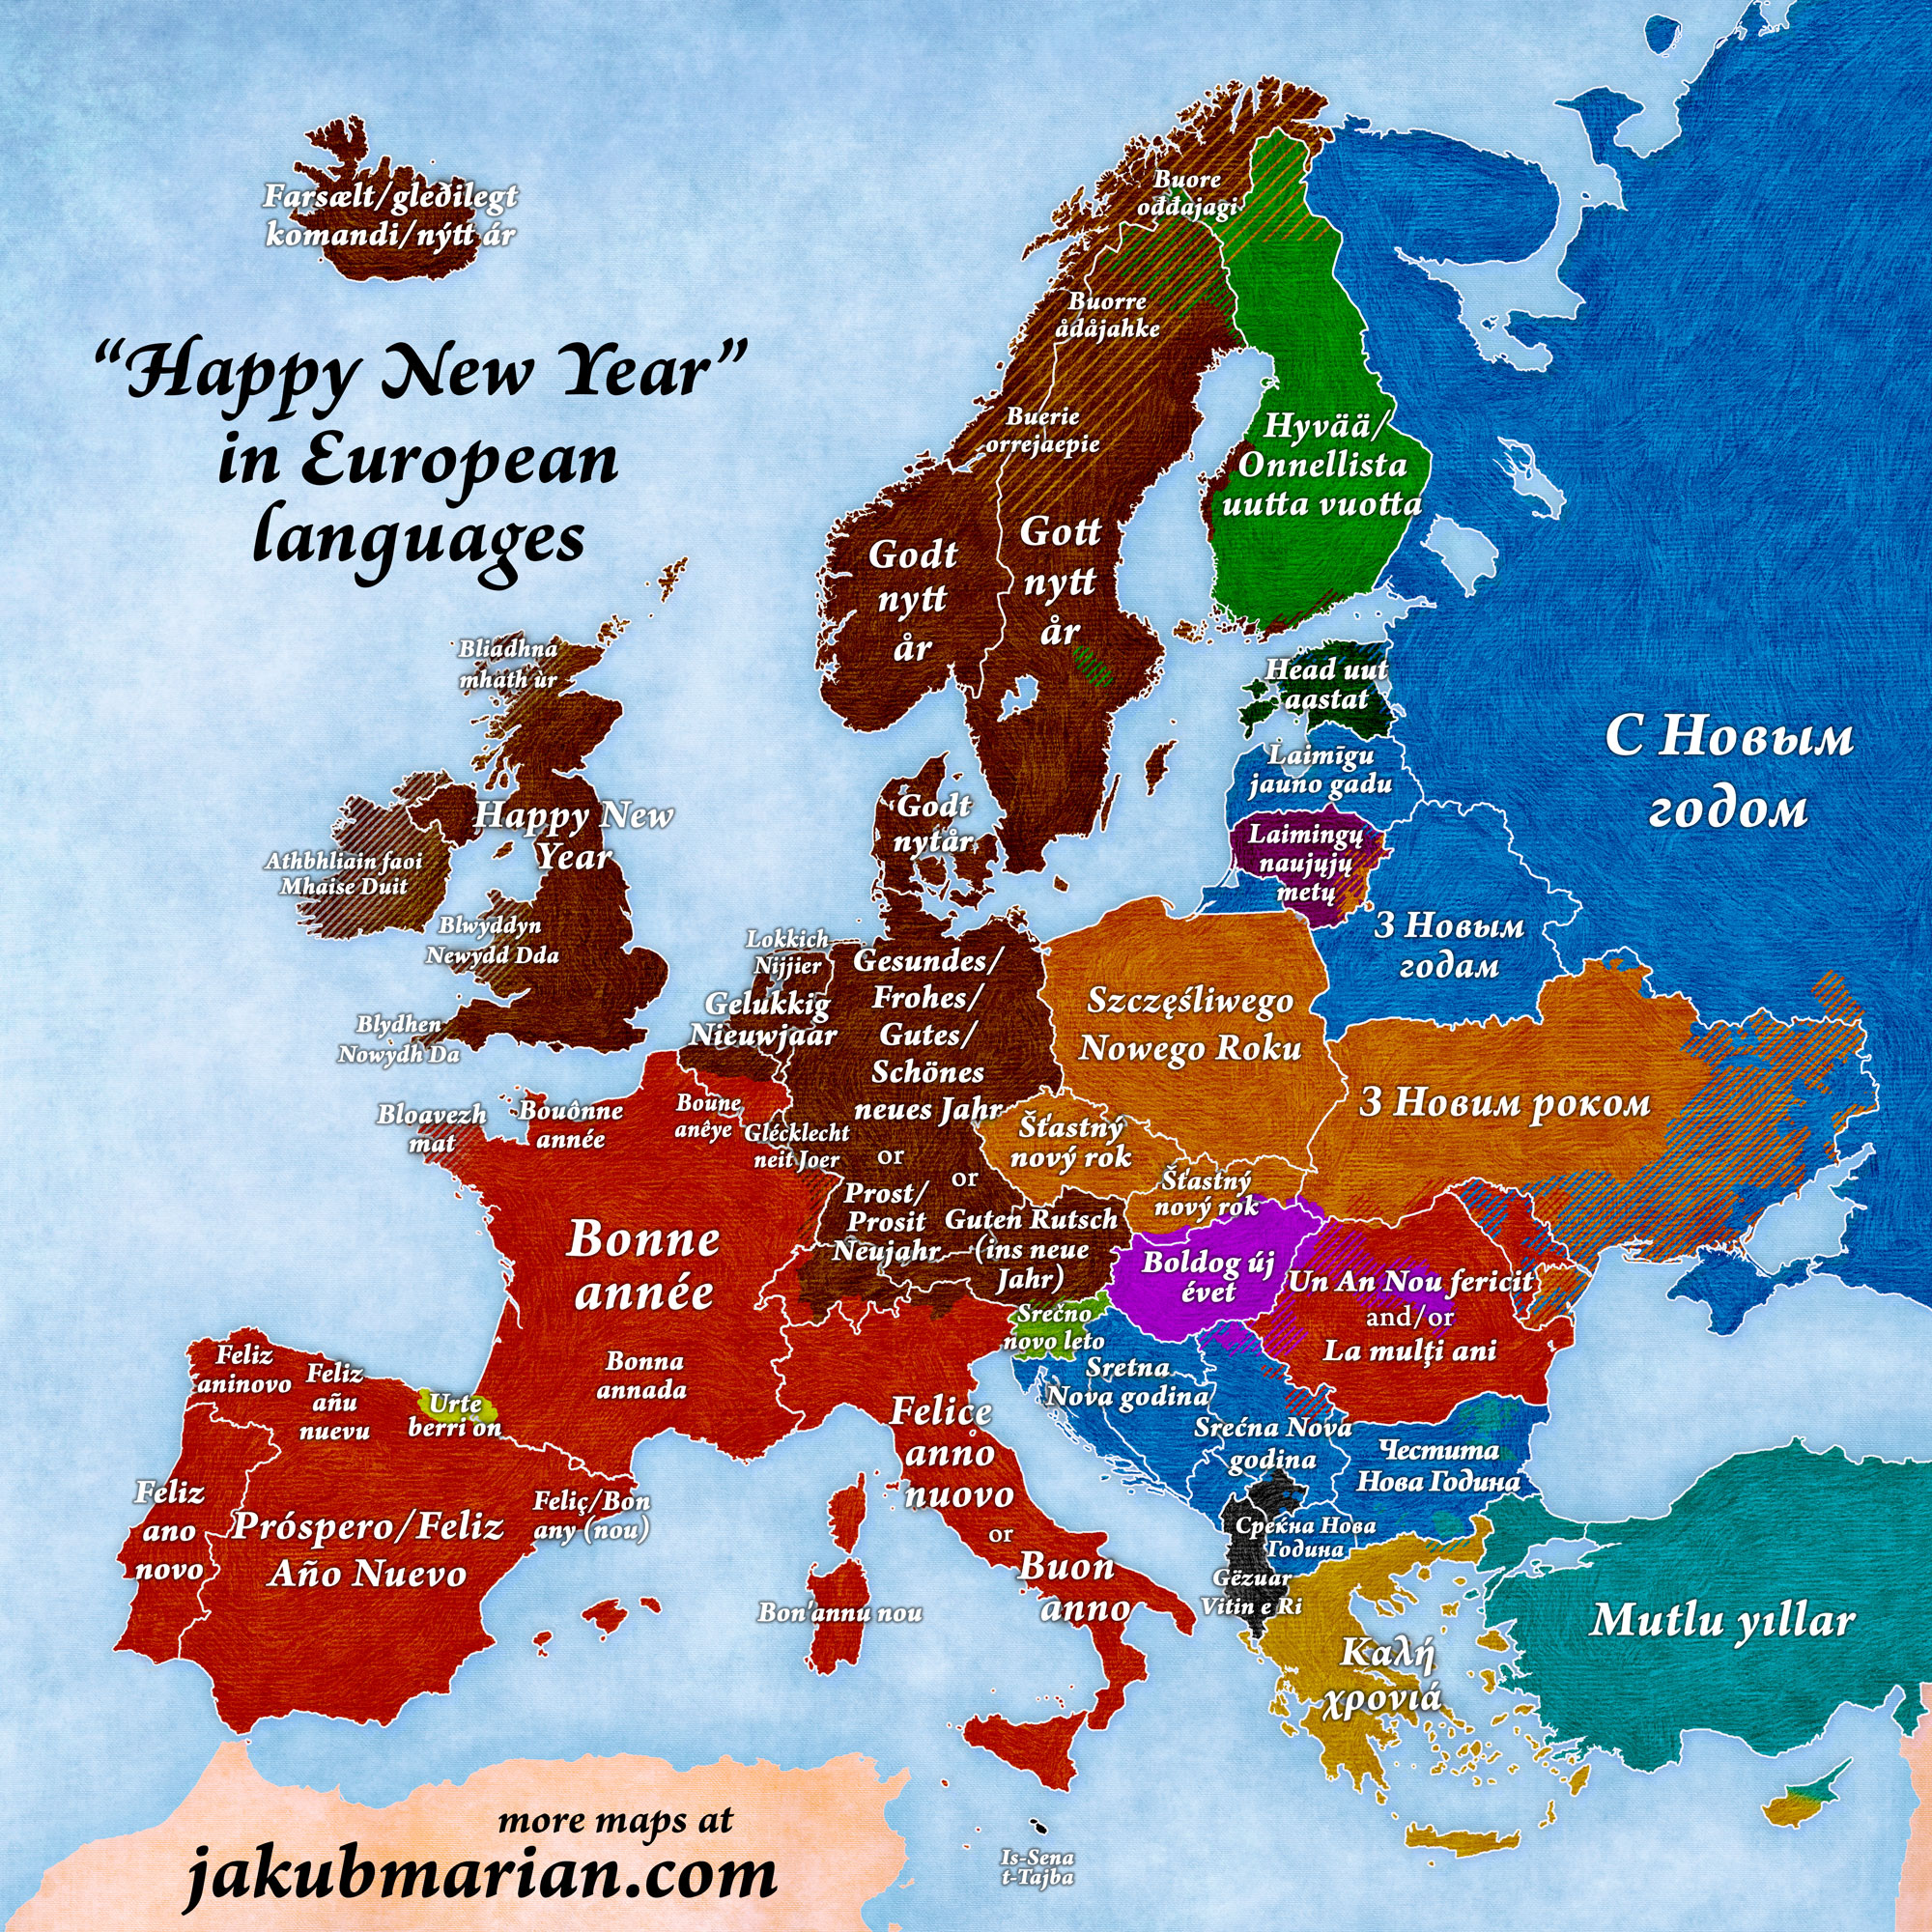 Happy new year in european languages europe - Happy new year sound europe ...